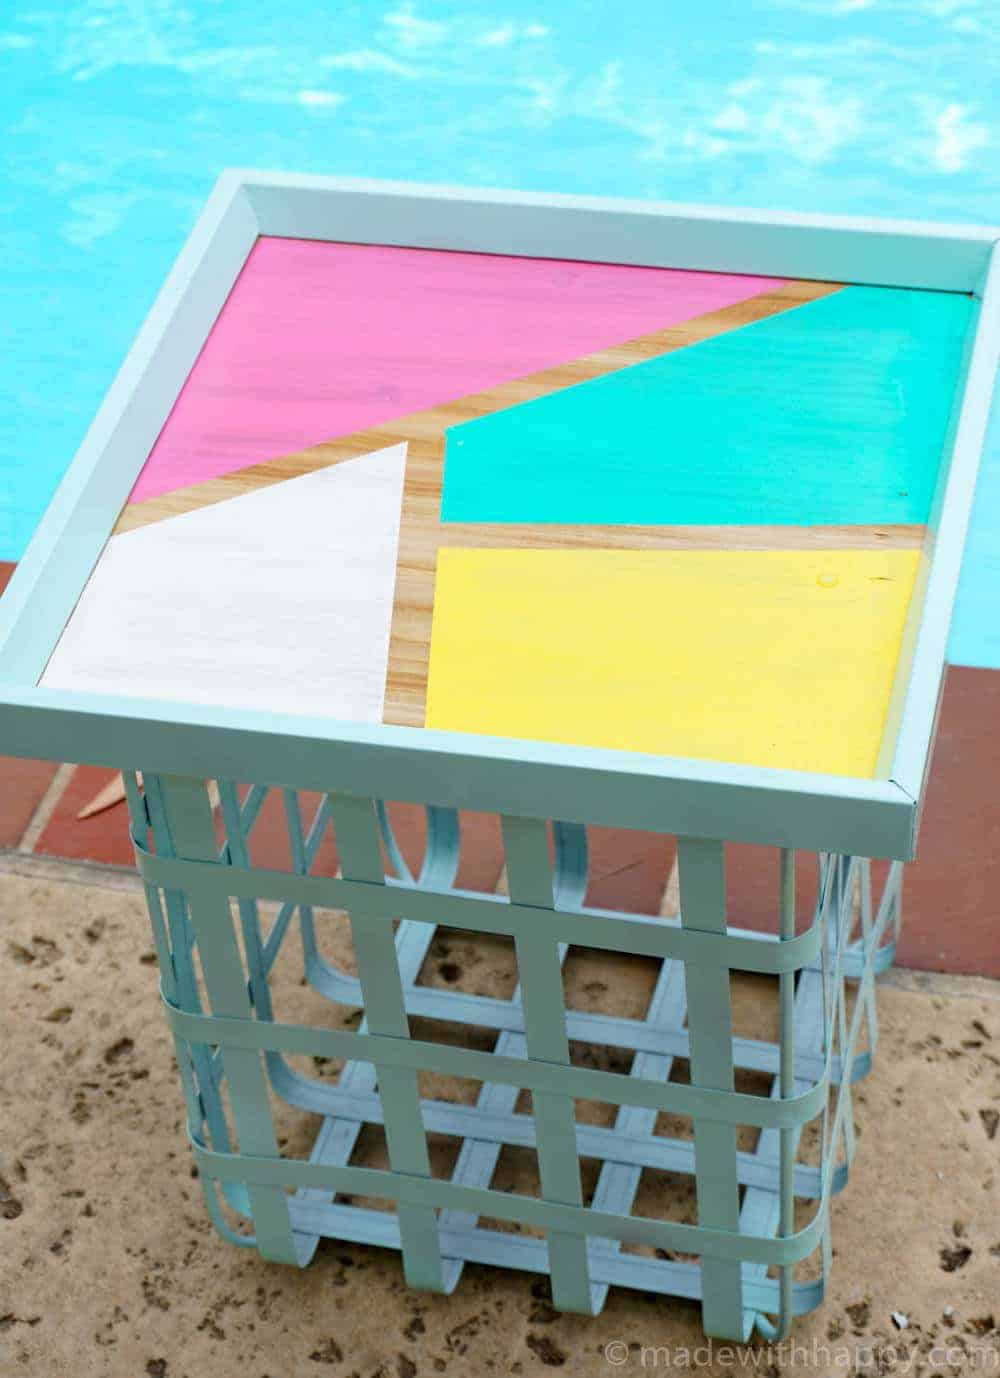 DIY Outdoor Storage Table   Pool Side Table   Pool Storage DIY   Bright Colored Backyard Furniture   www.madewithhappy.com